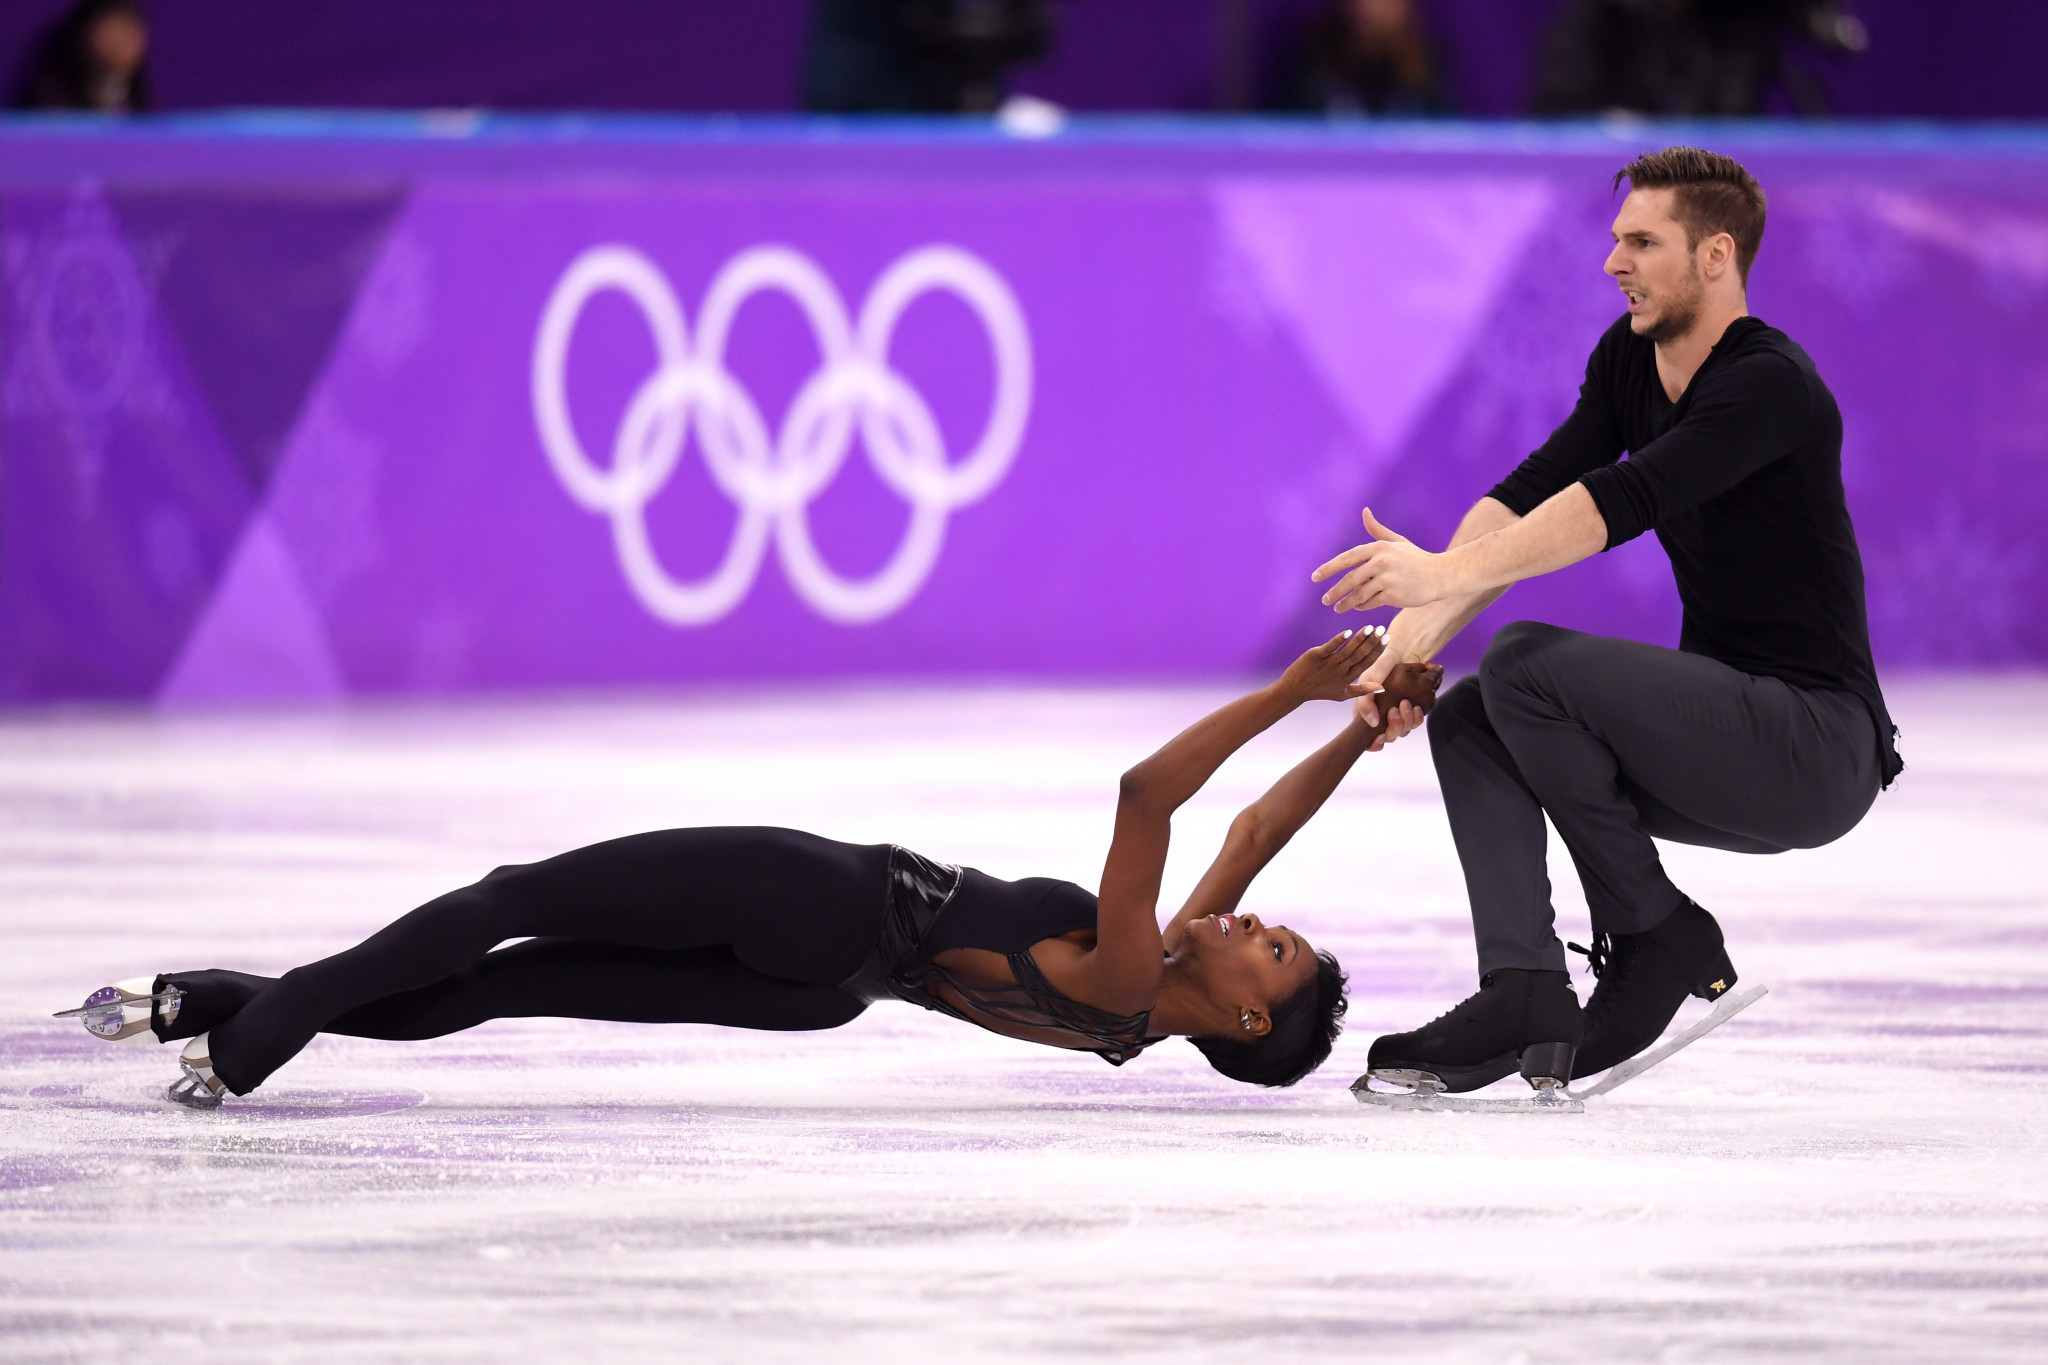 Morgan Ciprès and pairs partner Vanessa James competed in two Winter Olympic Games ©Getty Images